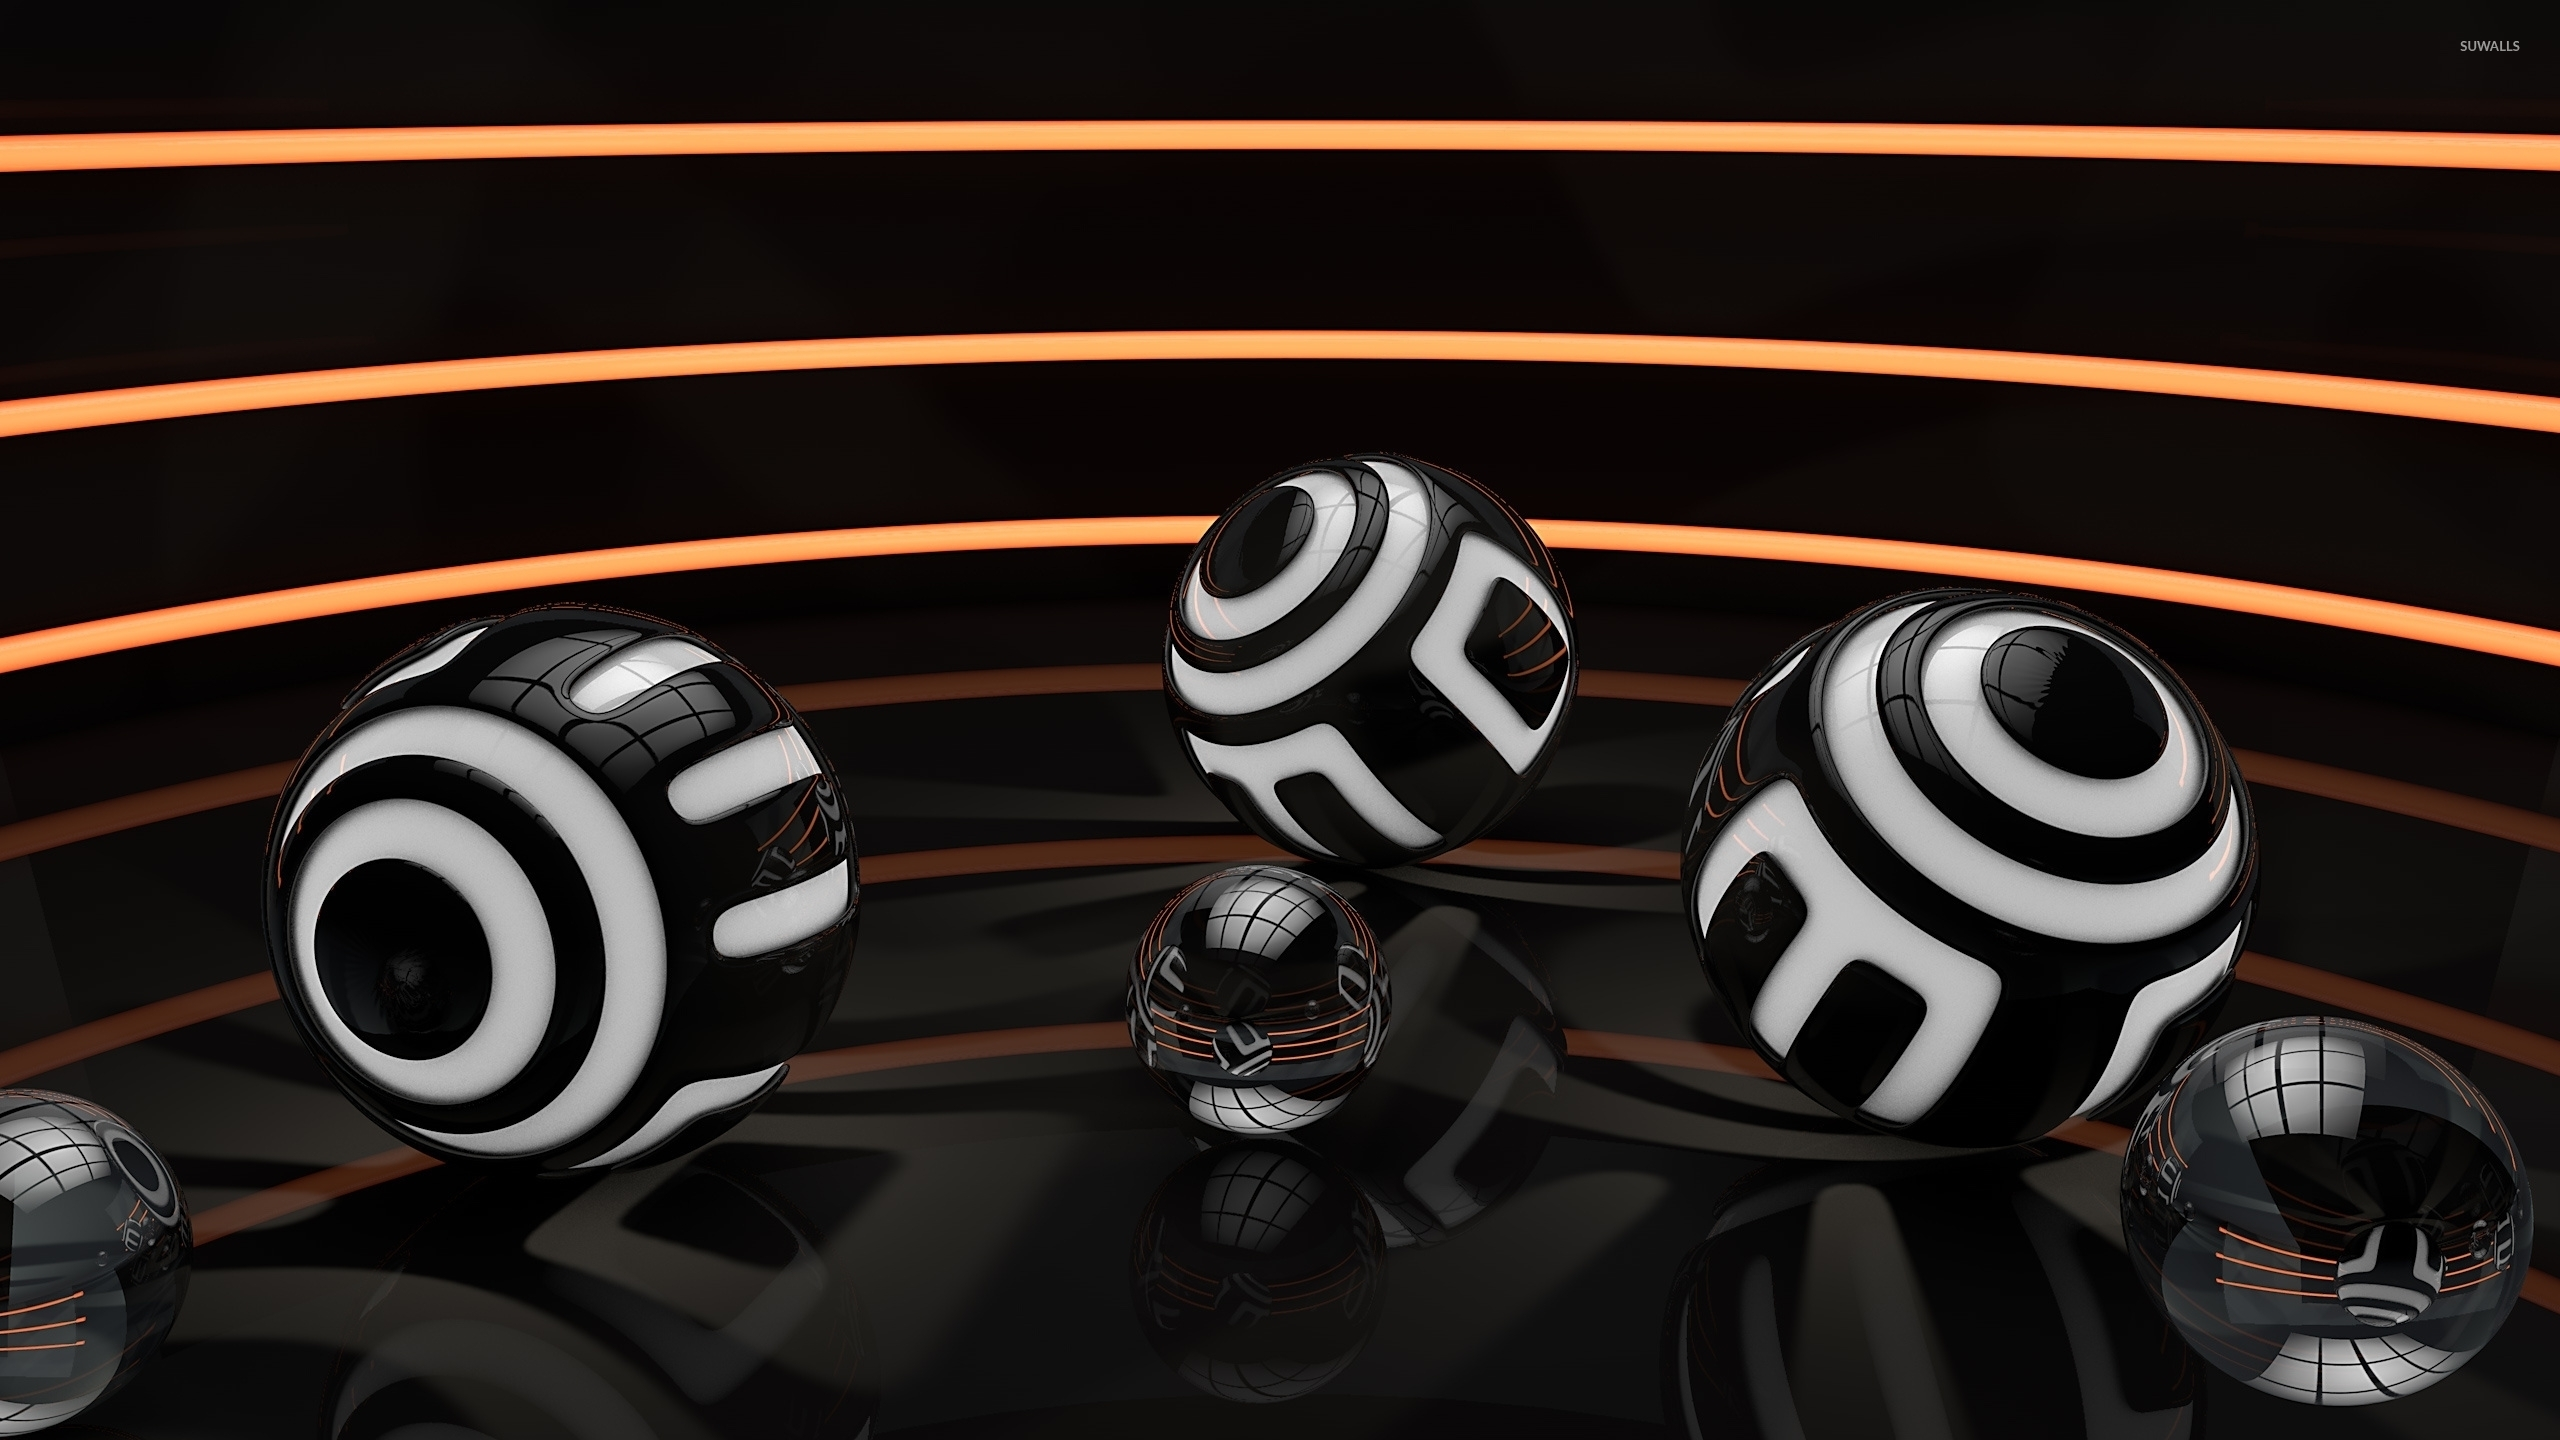 Black and white balls in an orange lit room wallpaper 3d for Black and white 3d wallpaper